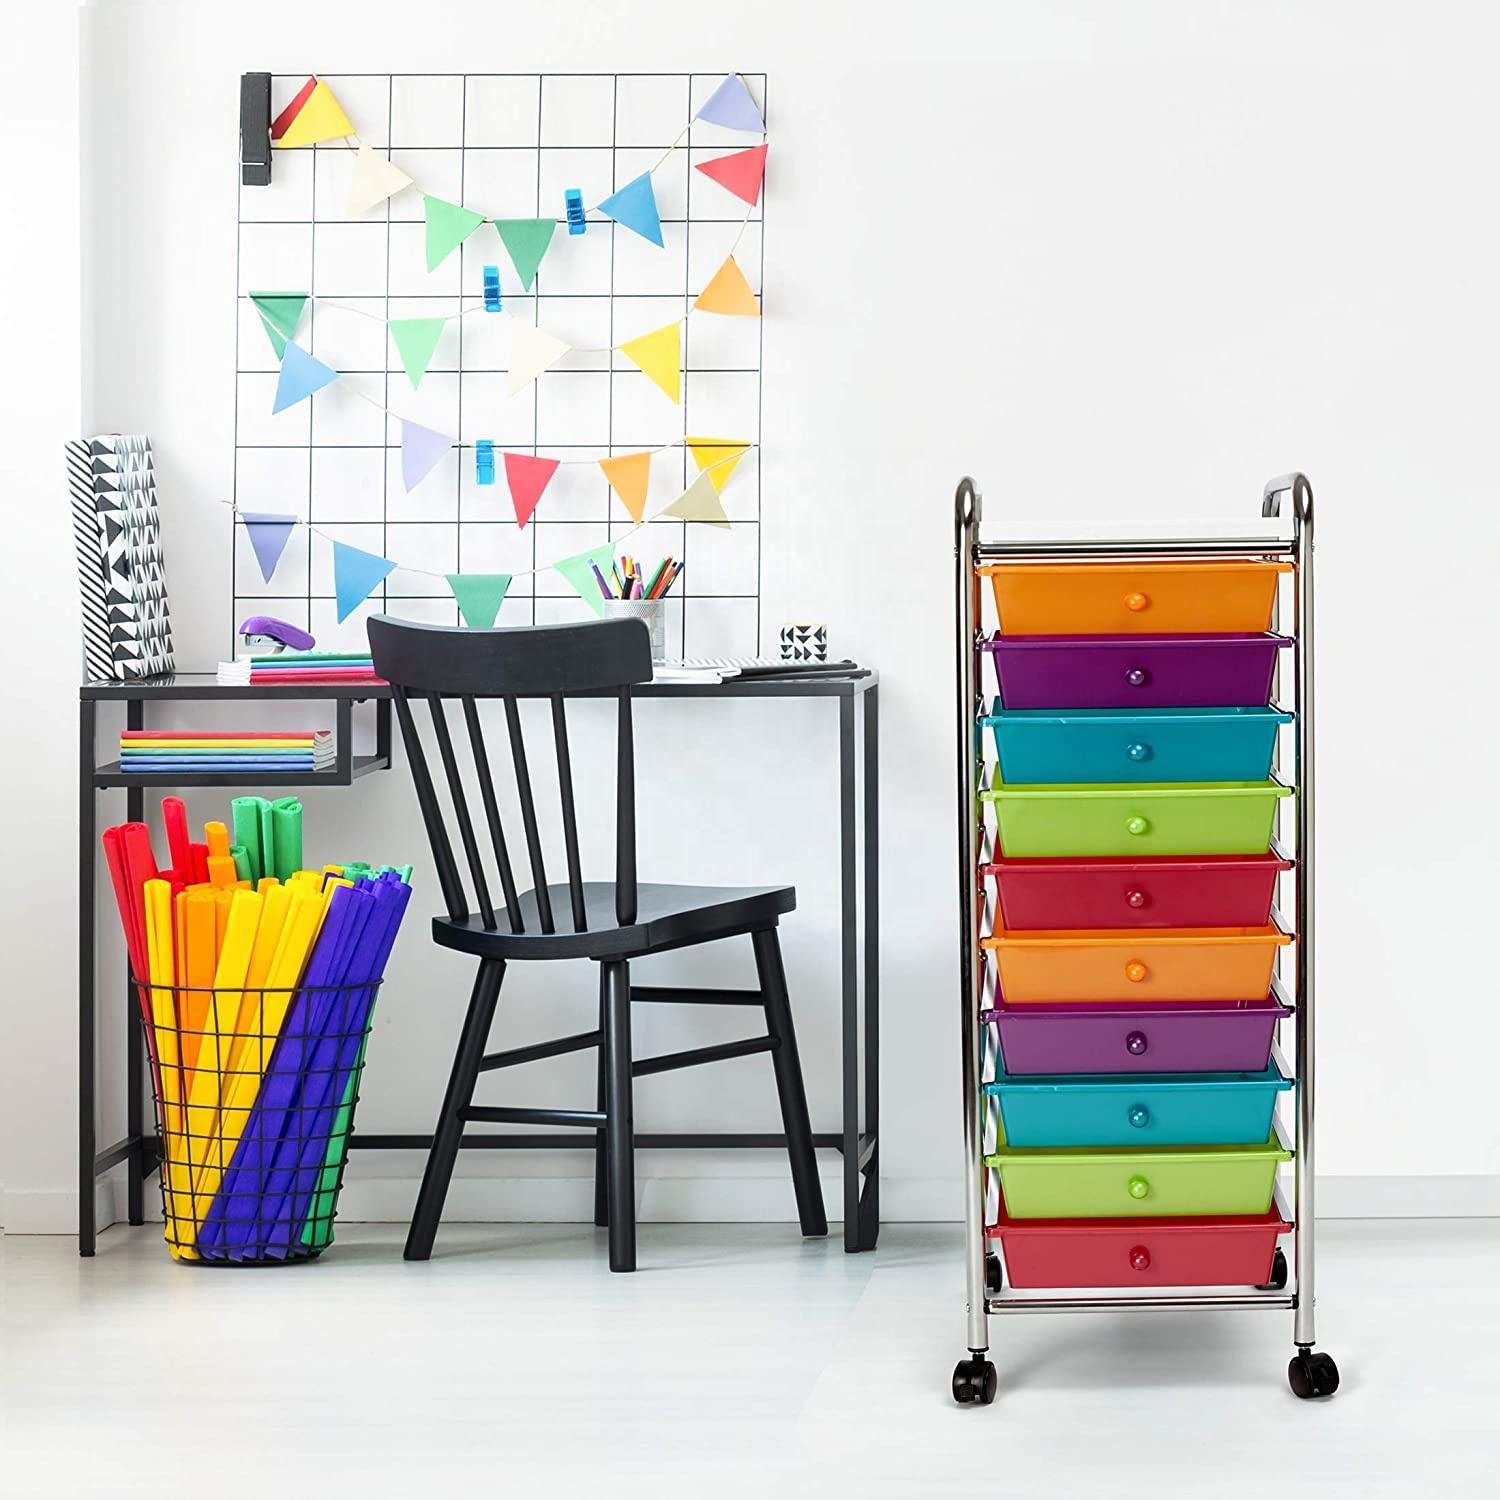 Wonderful Color 10 Drawers Rolling Organizer Cart Craft Utility Mobile Trolley Storage Organizer